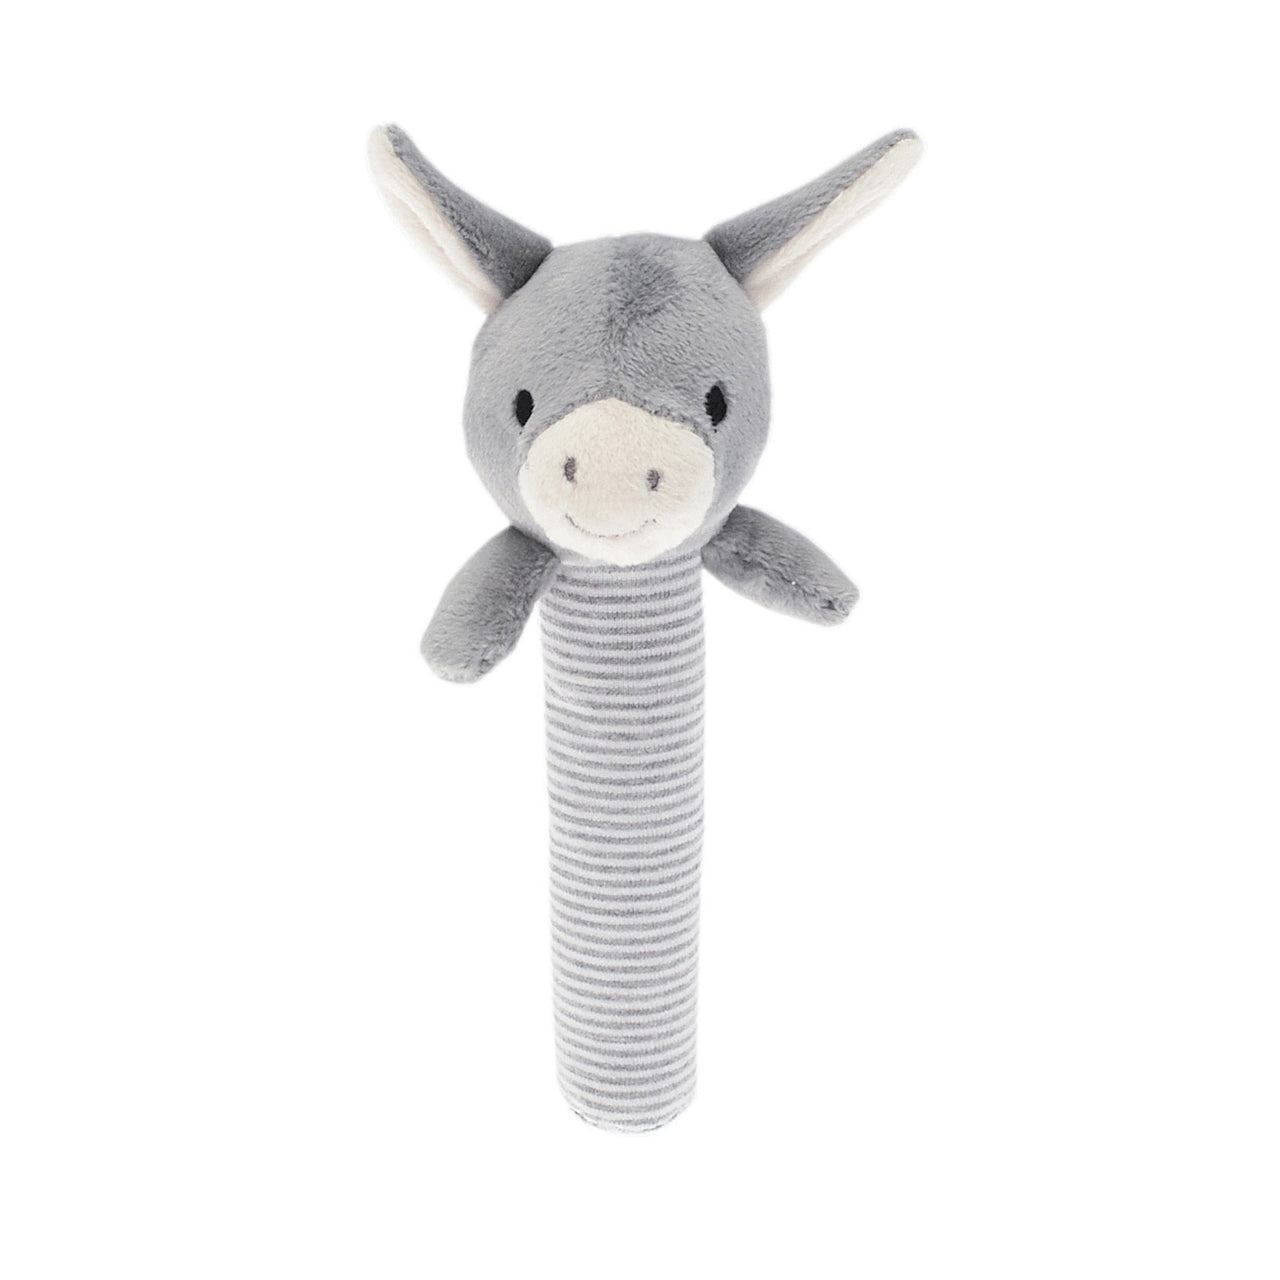 Rattle with Mystery the Donkey. Lightweight with contrasting fabrics of grey plush and grey/white striped jersey with a crinkle handel for curious fingers.